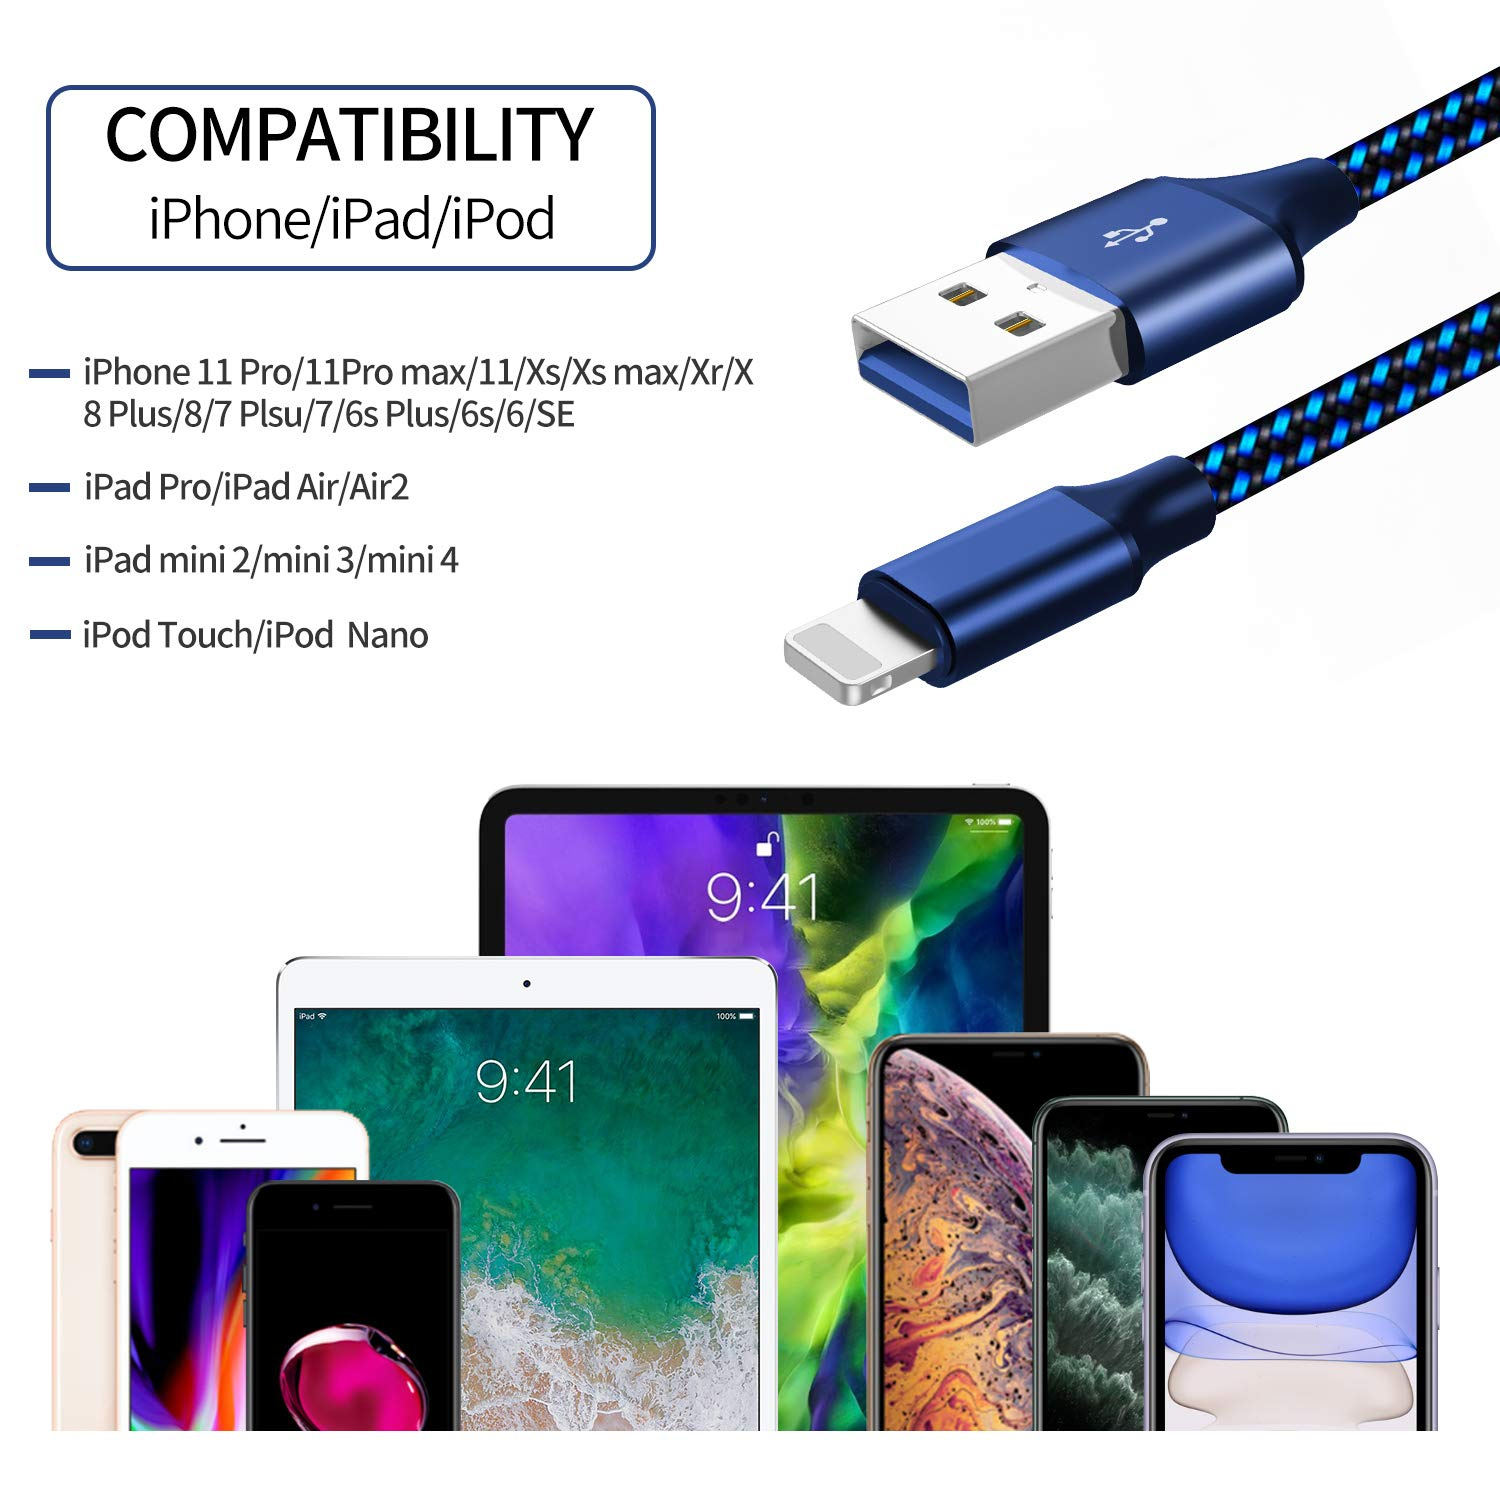 MFi Certified USB C to Lightning Cable, Fantany 3.3ft Metal Lightning to USB C Cable with Power Delivery Fast Charging/&Sync Compatible with iPhone 11//11 Pro Max//XR//X//XS//XS Max,iPad,Airpods,Colourful